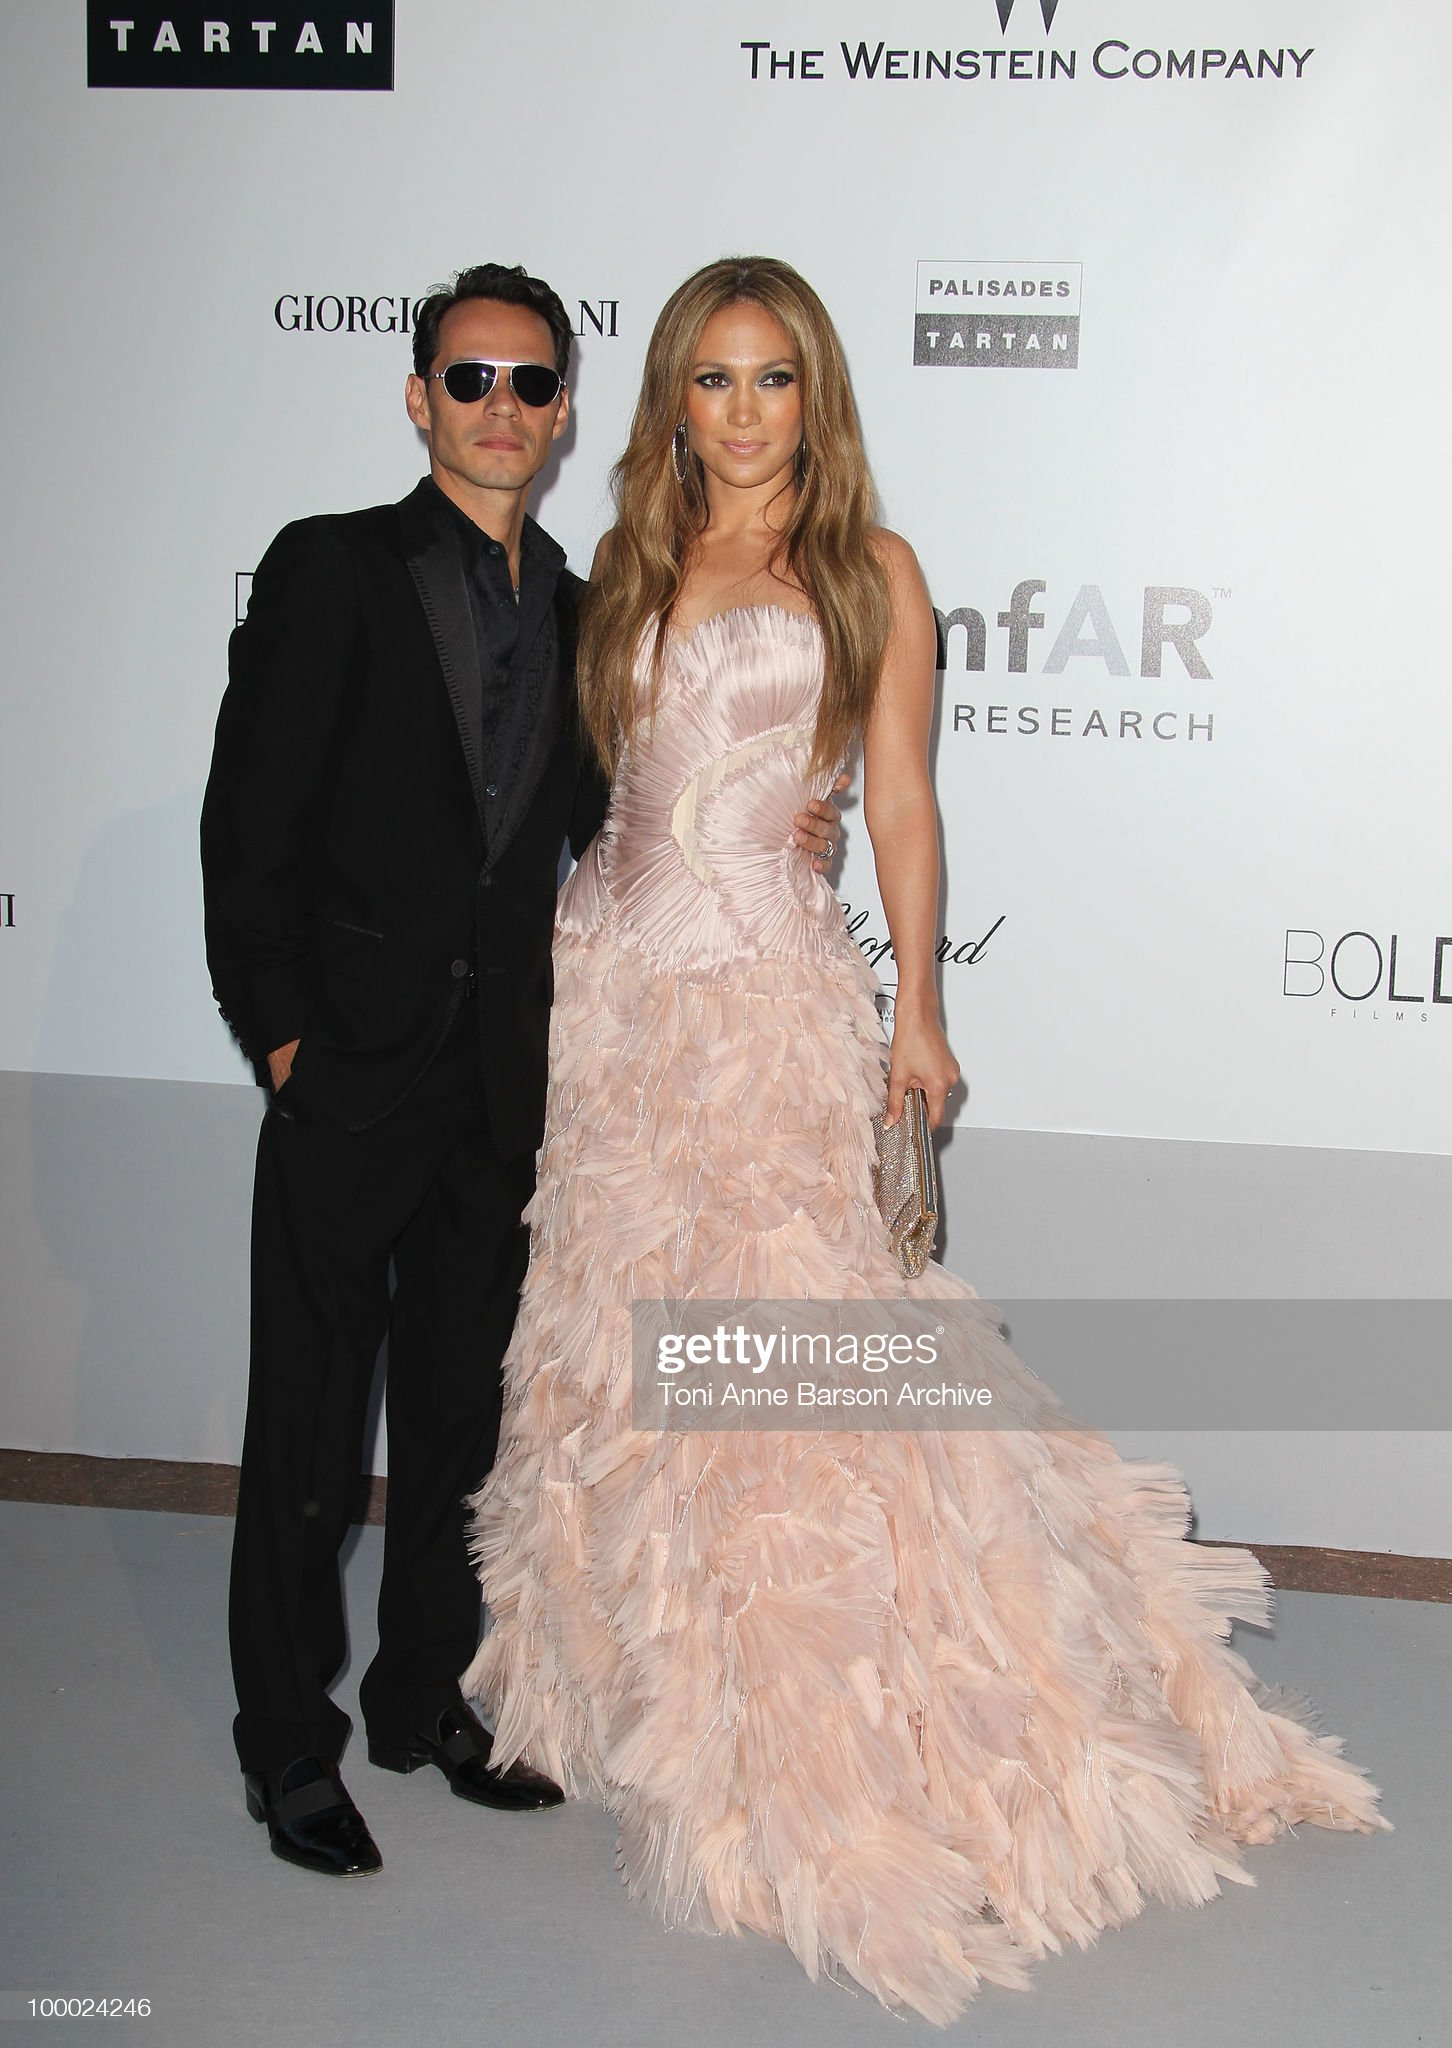 ¿Cuánto mide Marc Anthony? - Altura - Real height Marc-anthony-and-jennifer-lopez-attend-the-amfar-cinema-against-aids-picture-id100024246?s=2048x2048